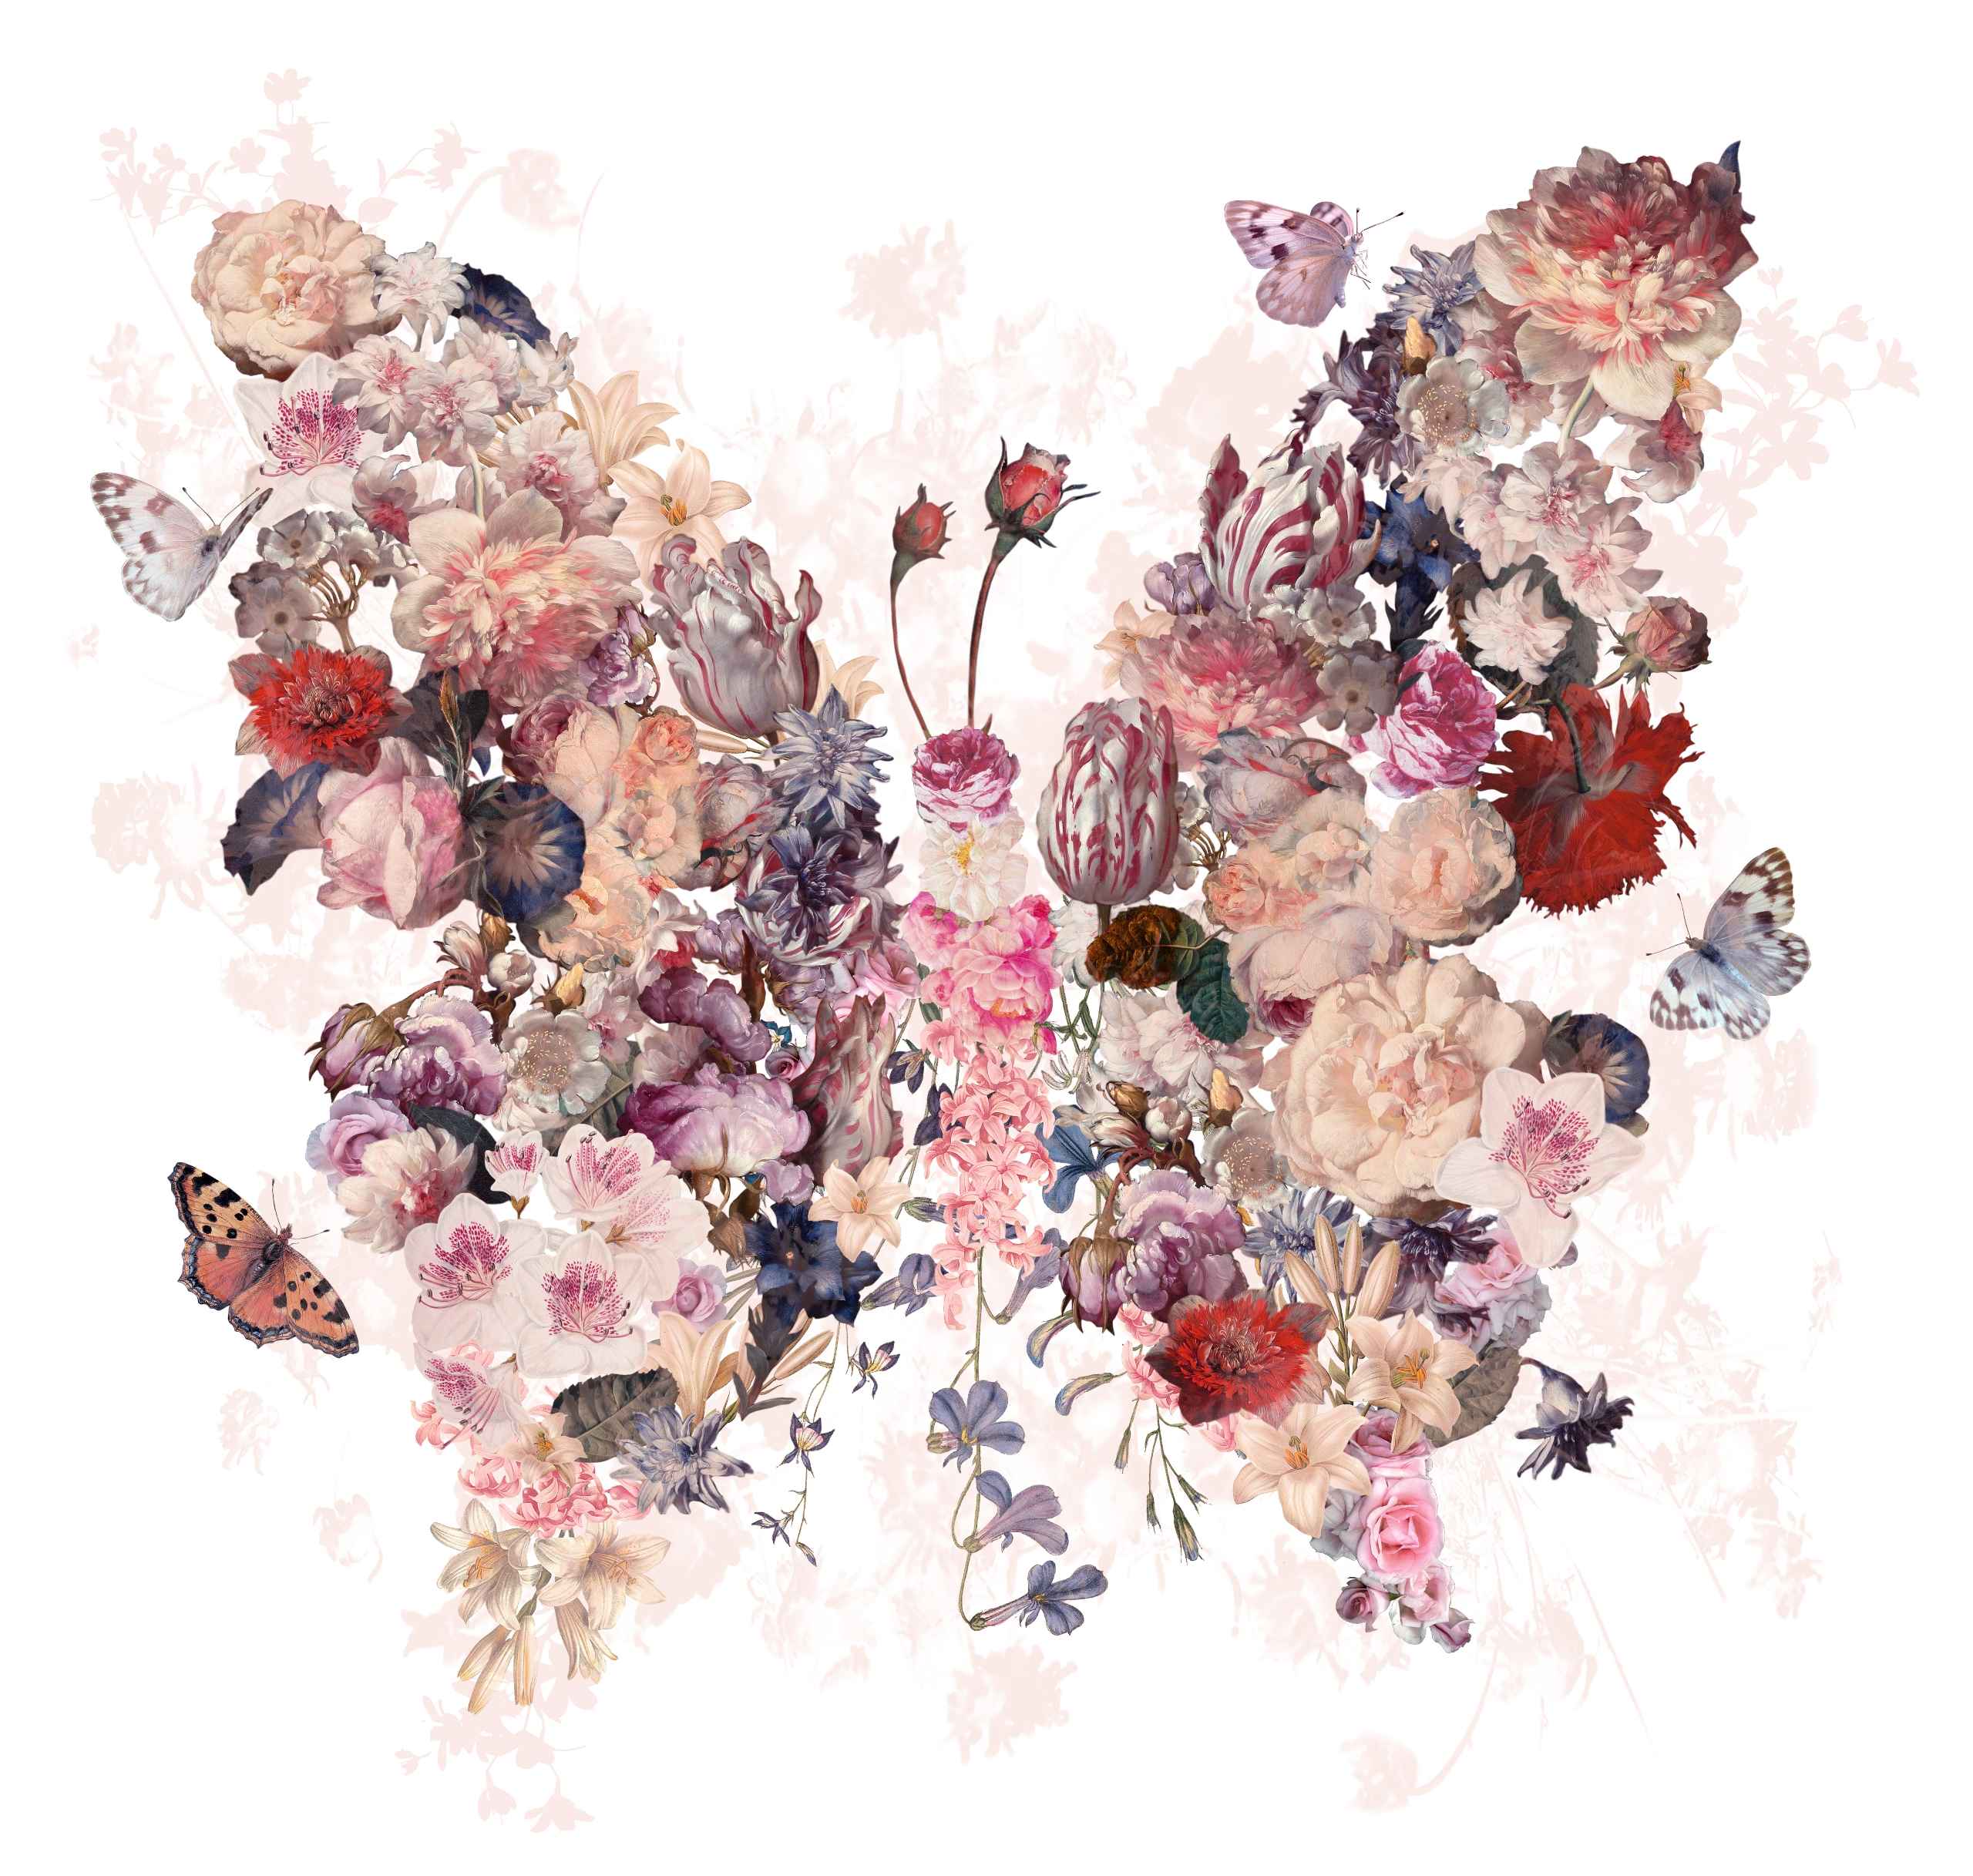 Butterfly Flowers Submitted Goo - ferreiraricardo | ello